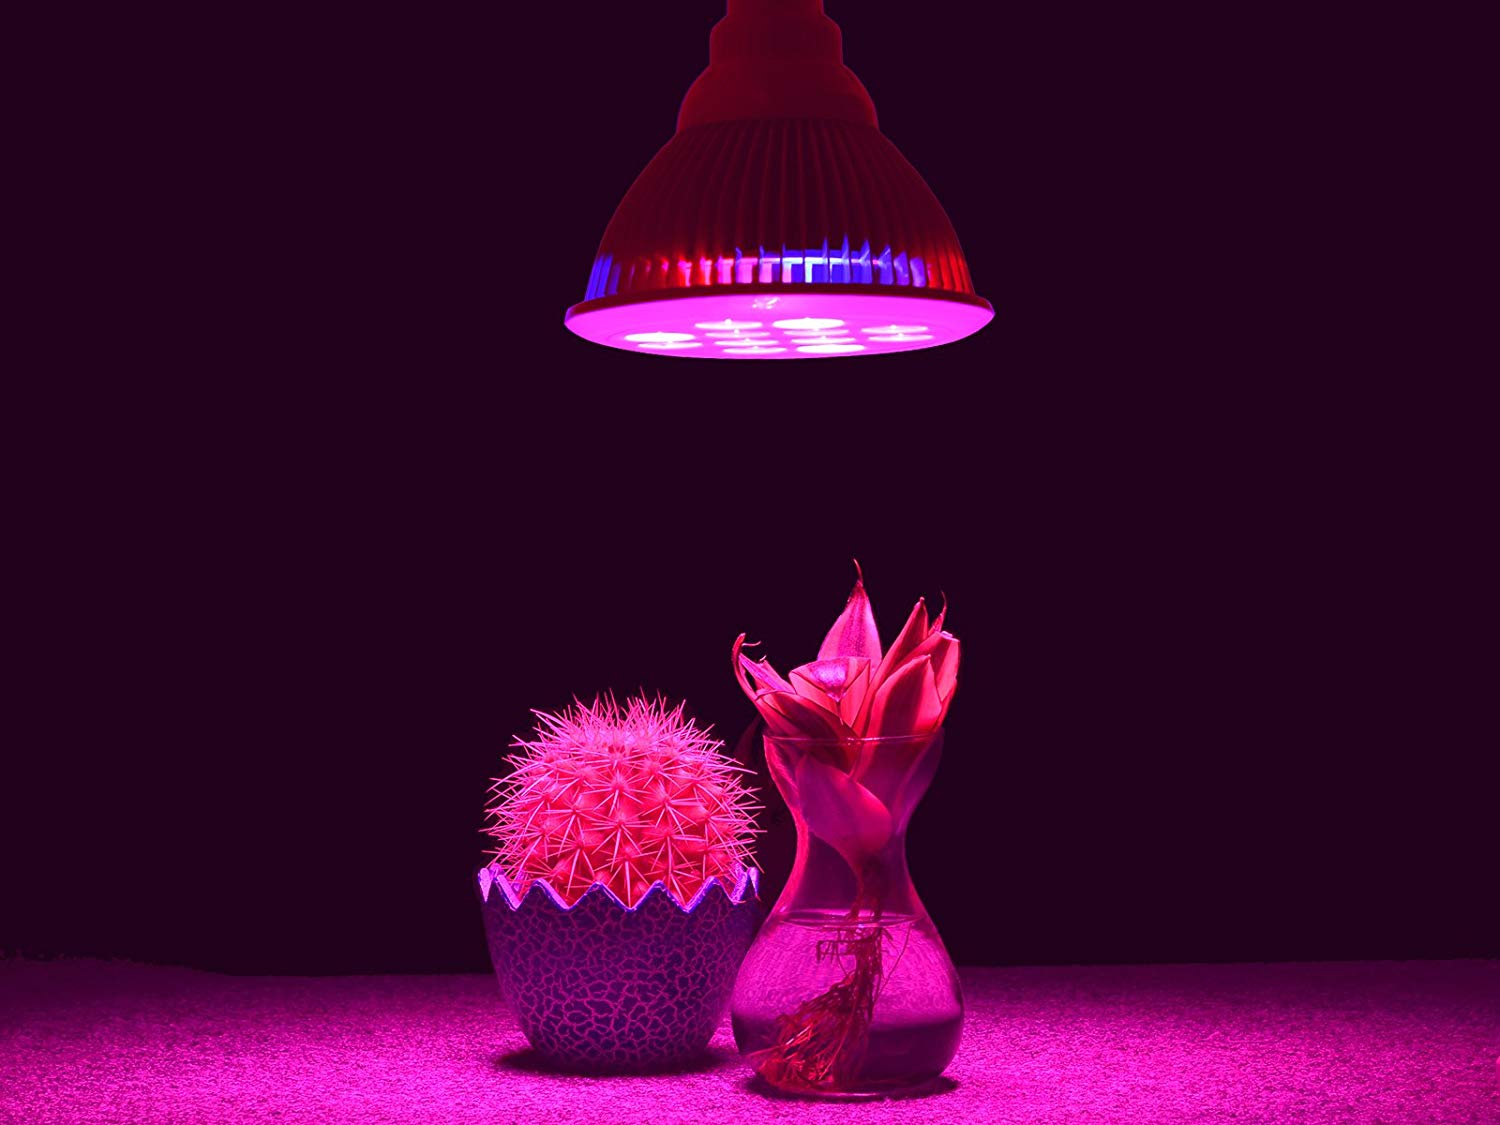 Led Lights Bad Health Are Led Grow Lights Harmful To Humans Yardyum Garden